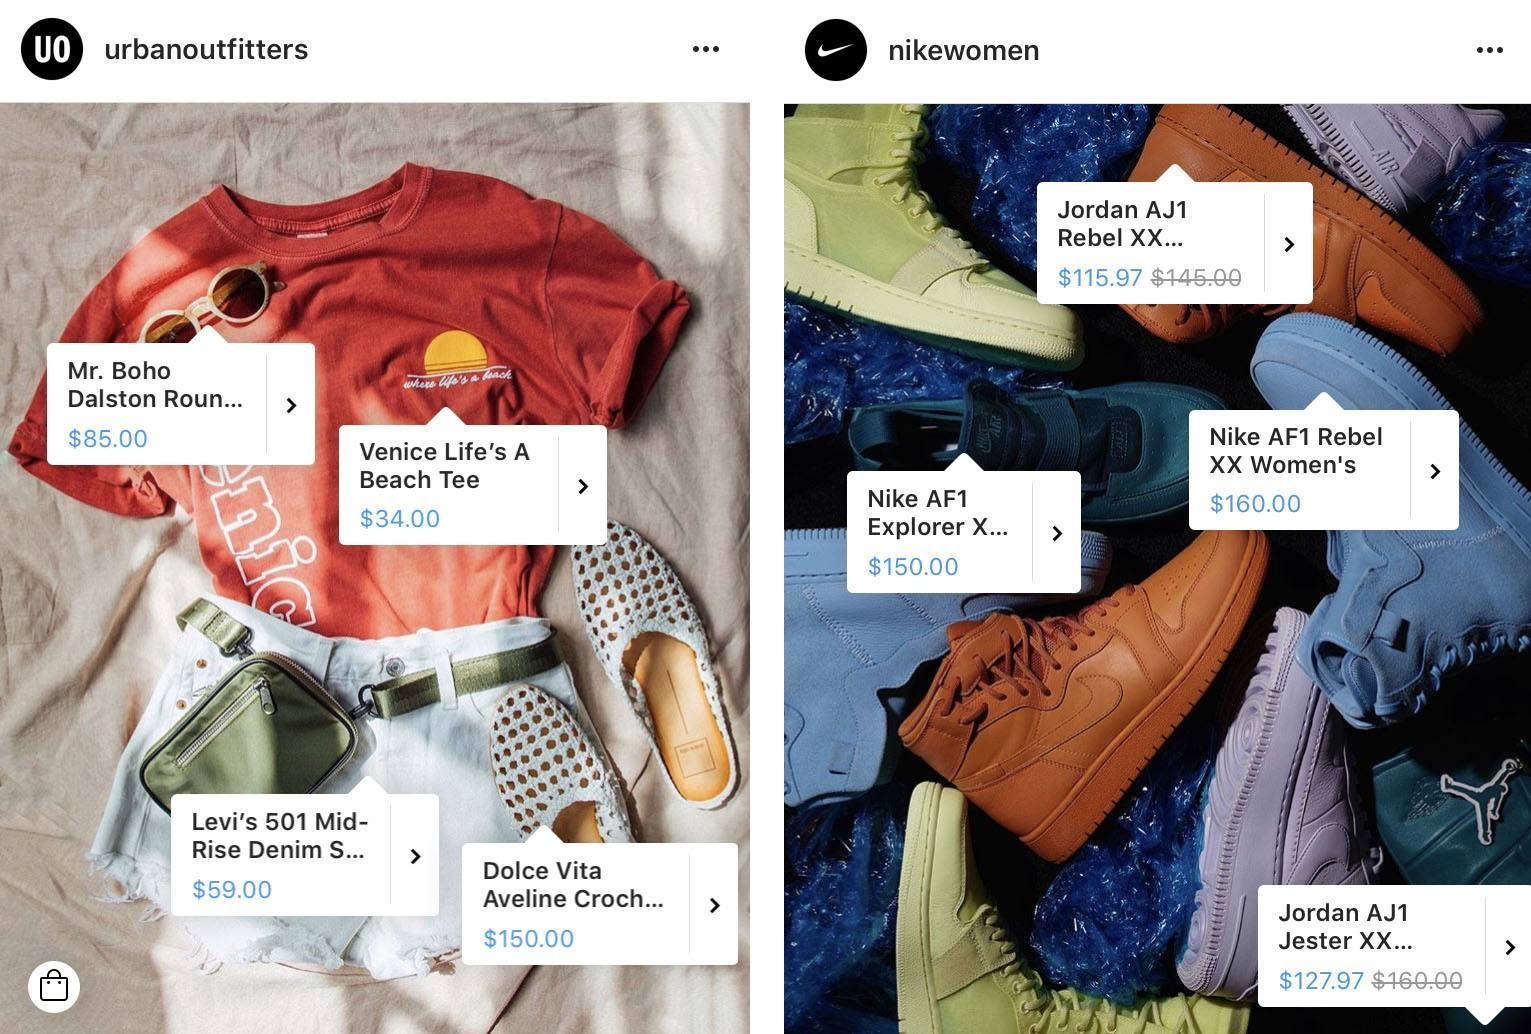 new instagram update - shoppable posts